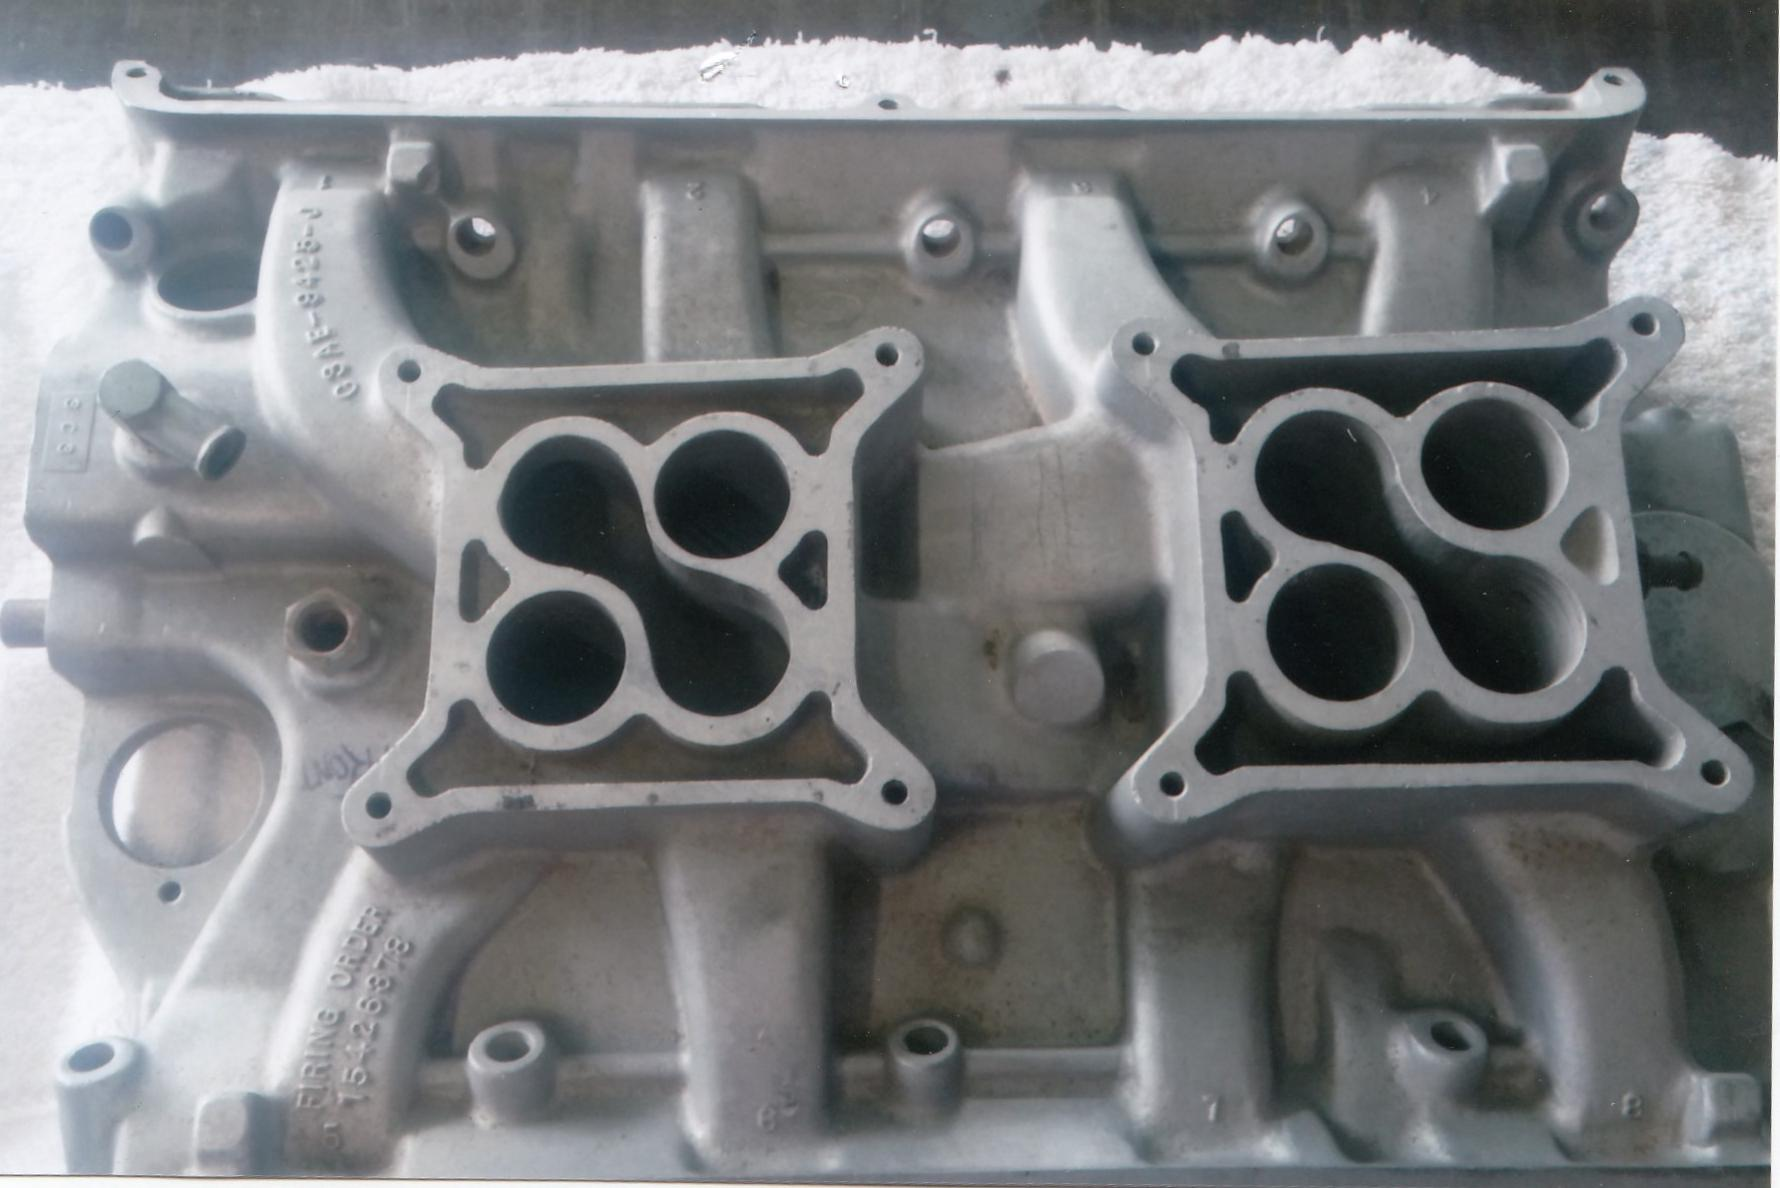 Engine Parts for sale in Australia - JUST PARTS